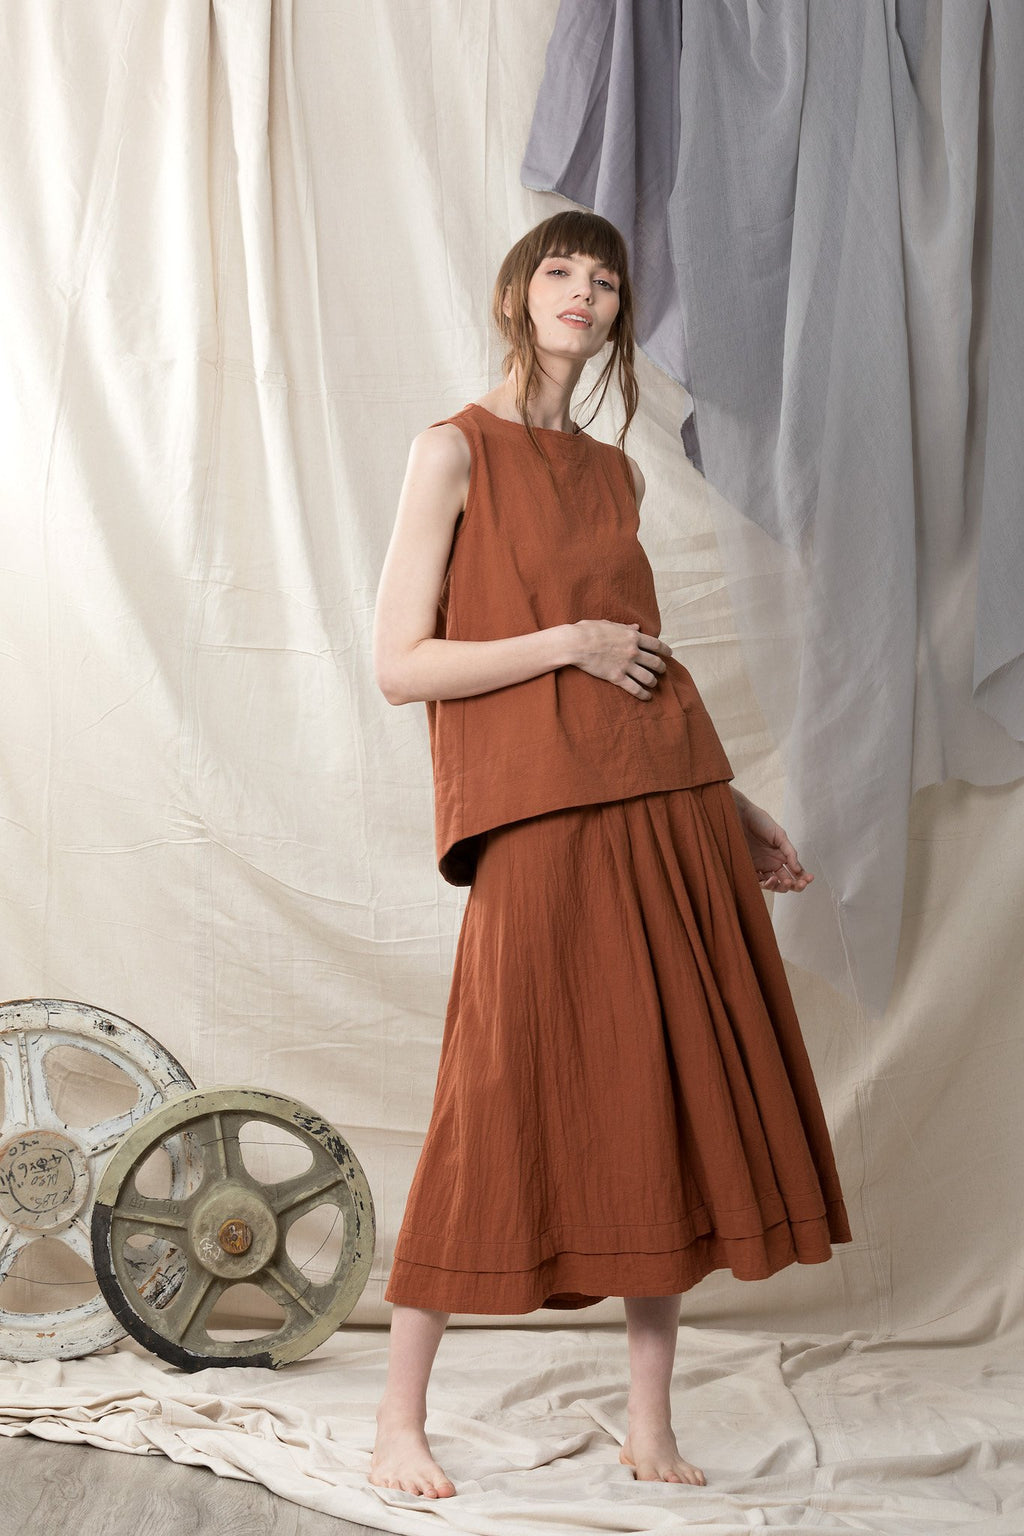 Copper Skirt Skirts Ethical Sustainable Vegan Organic Australian fashion womens clothes